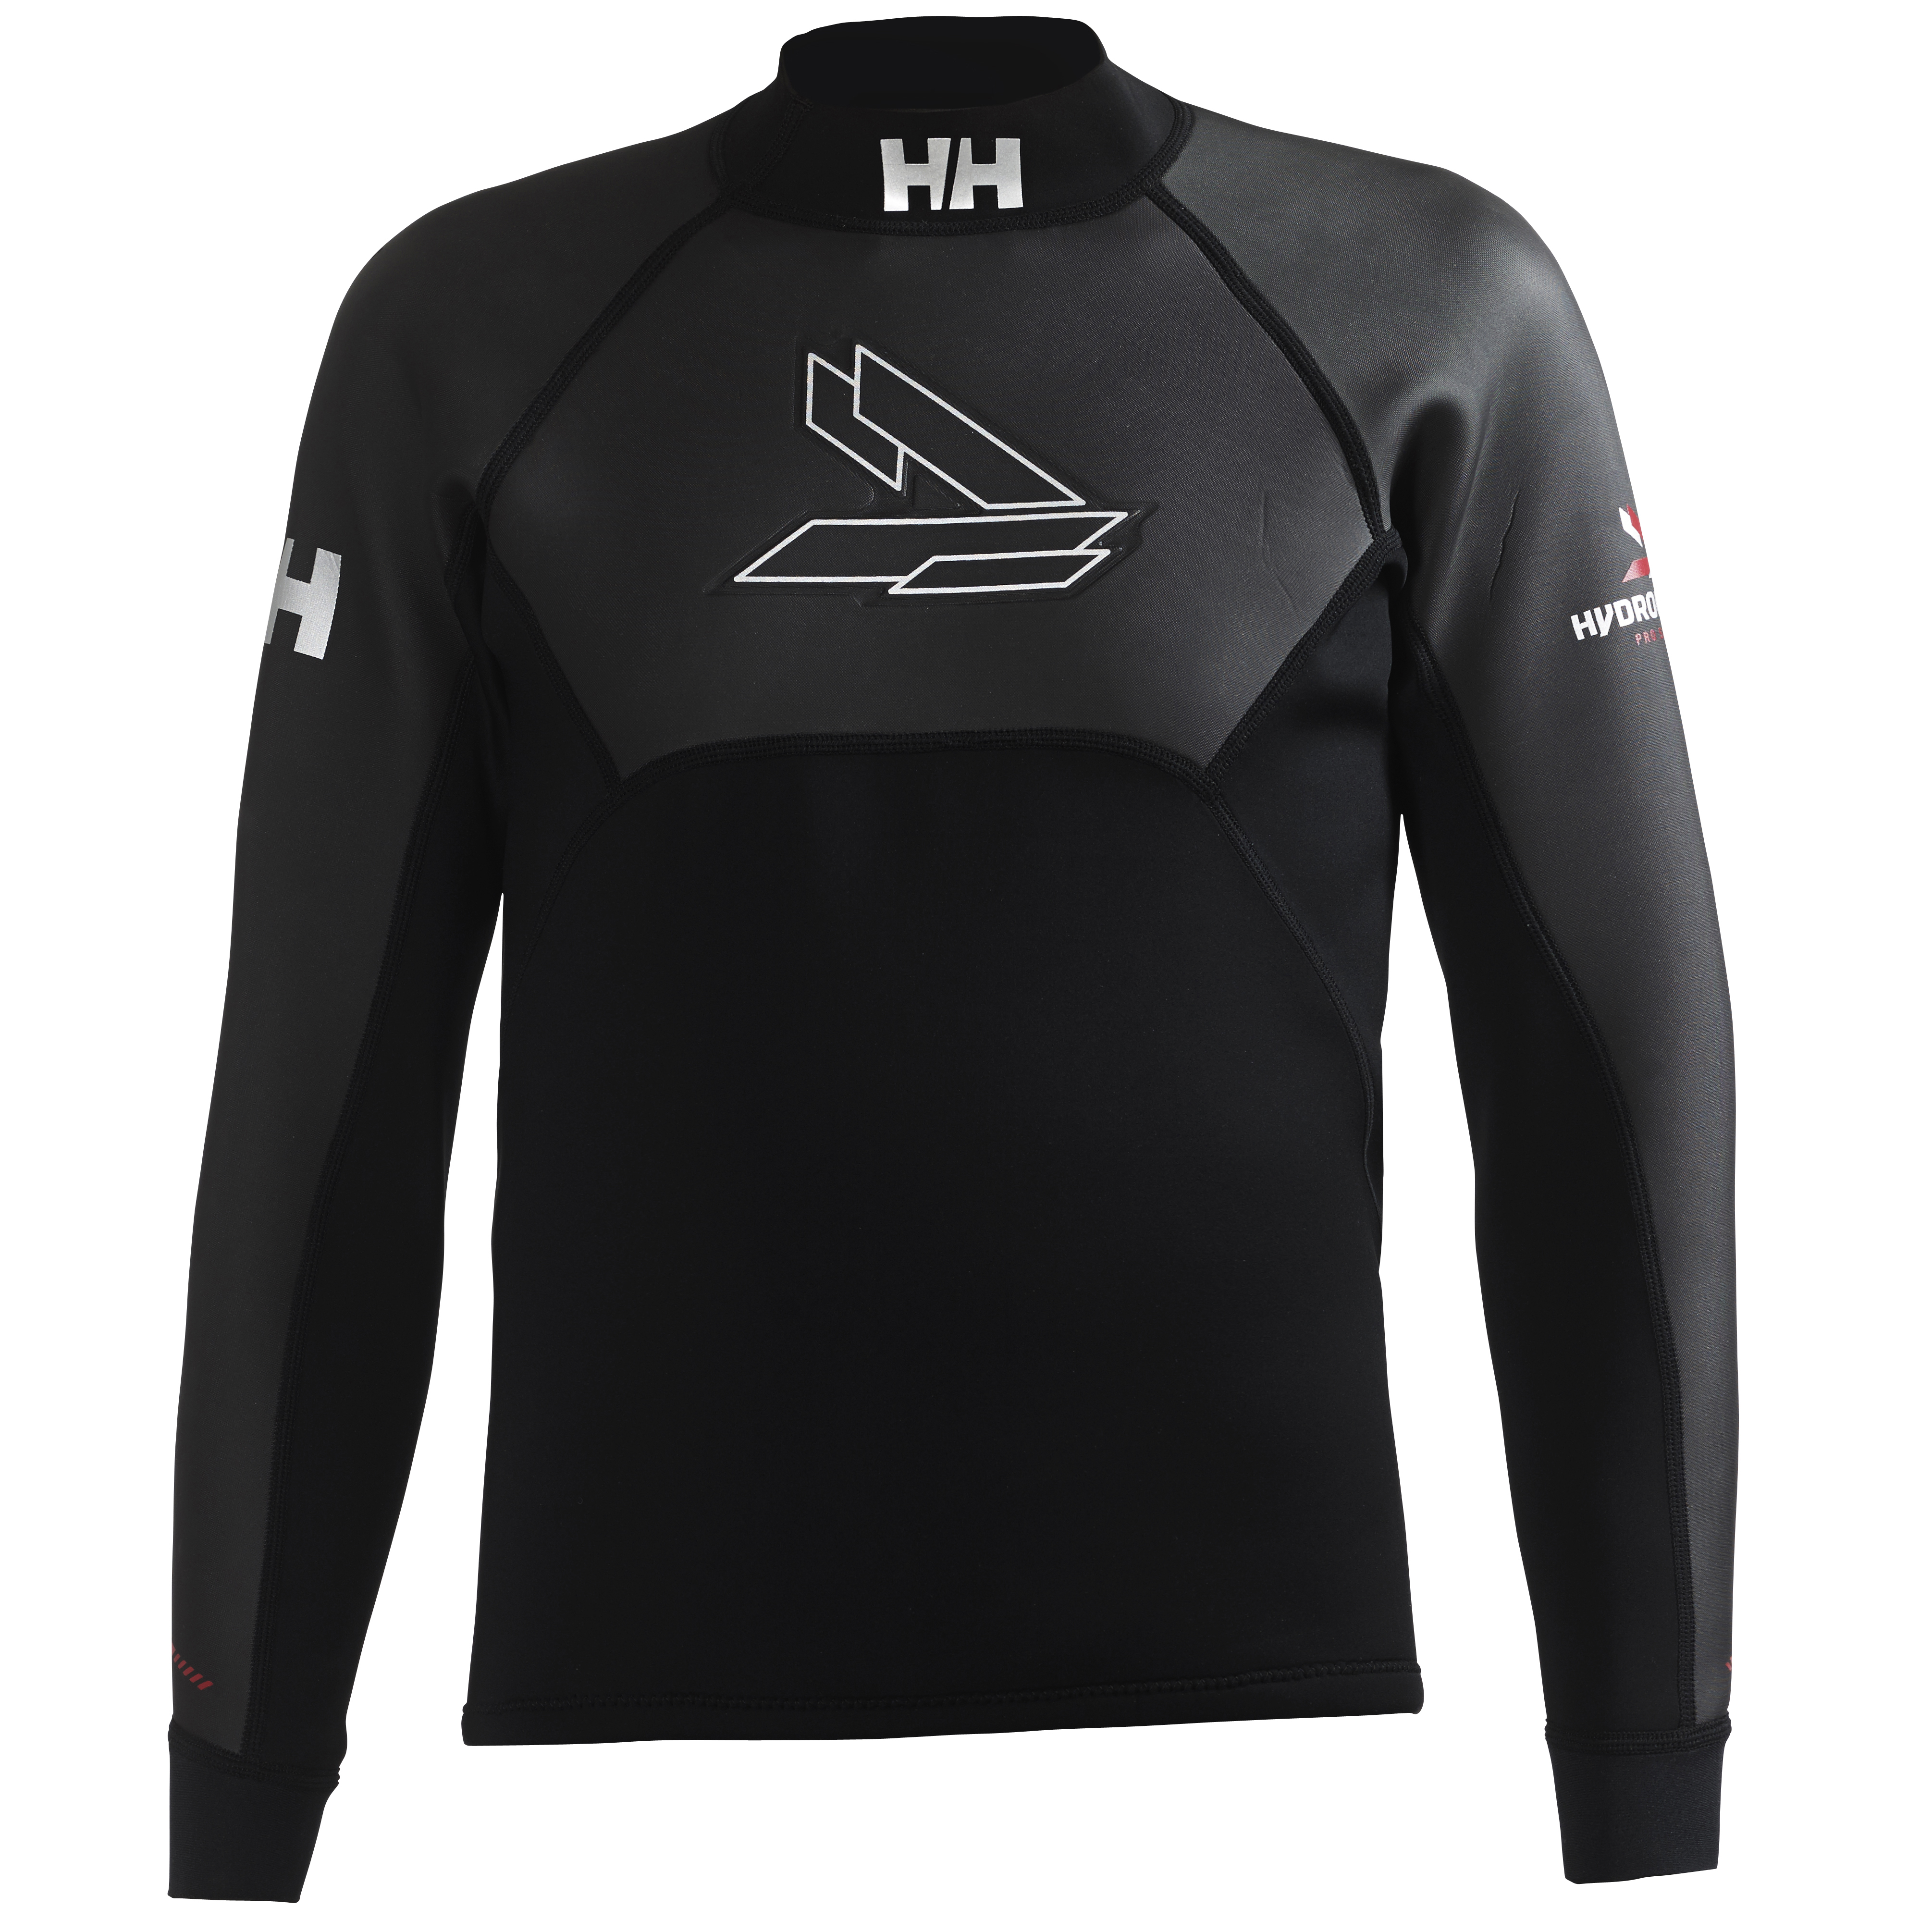 HELLY HANSEN WET SUIT TOP (31705)